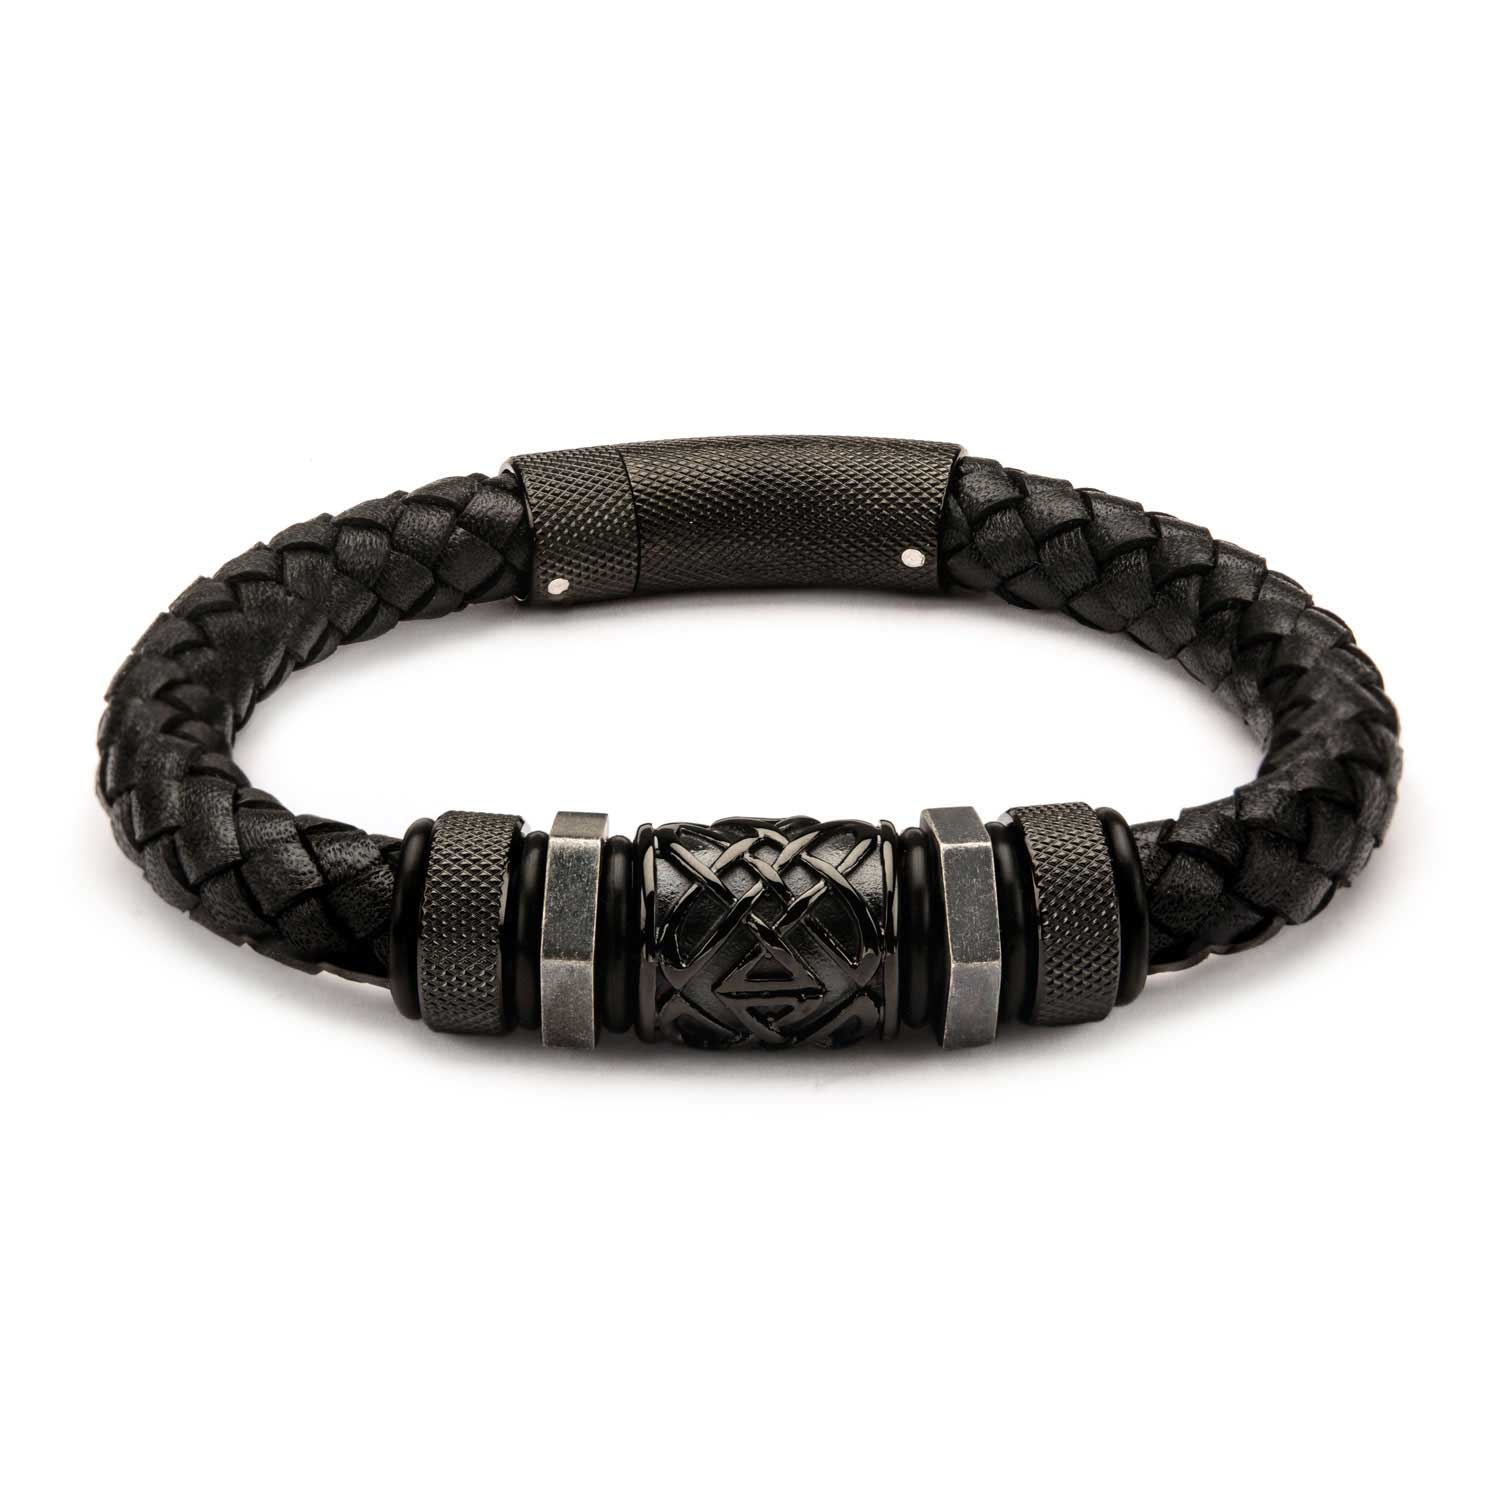 Black Braided Leather with Steel Black Plated Beads Bracelet